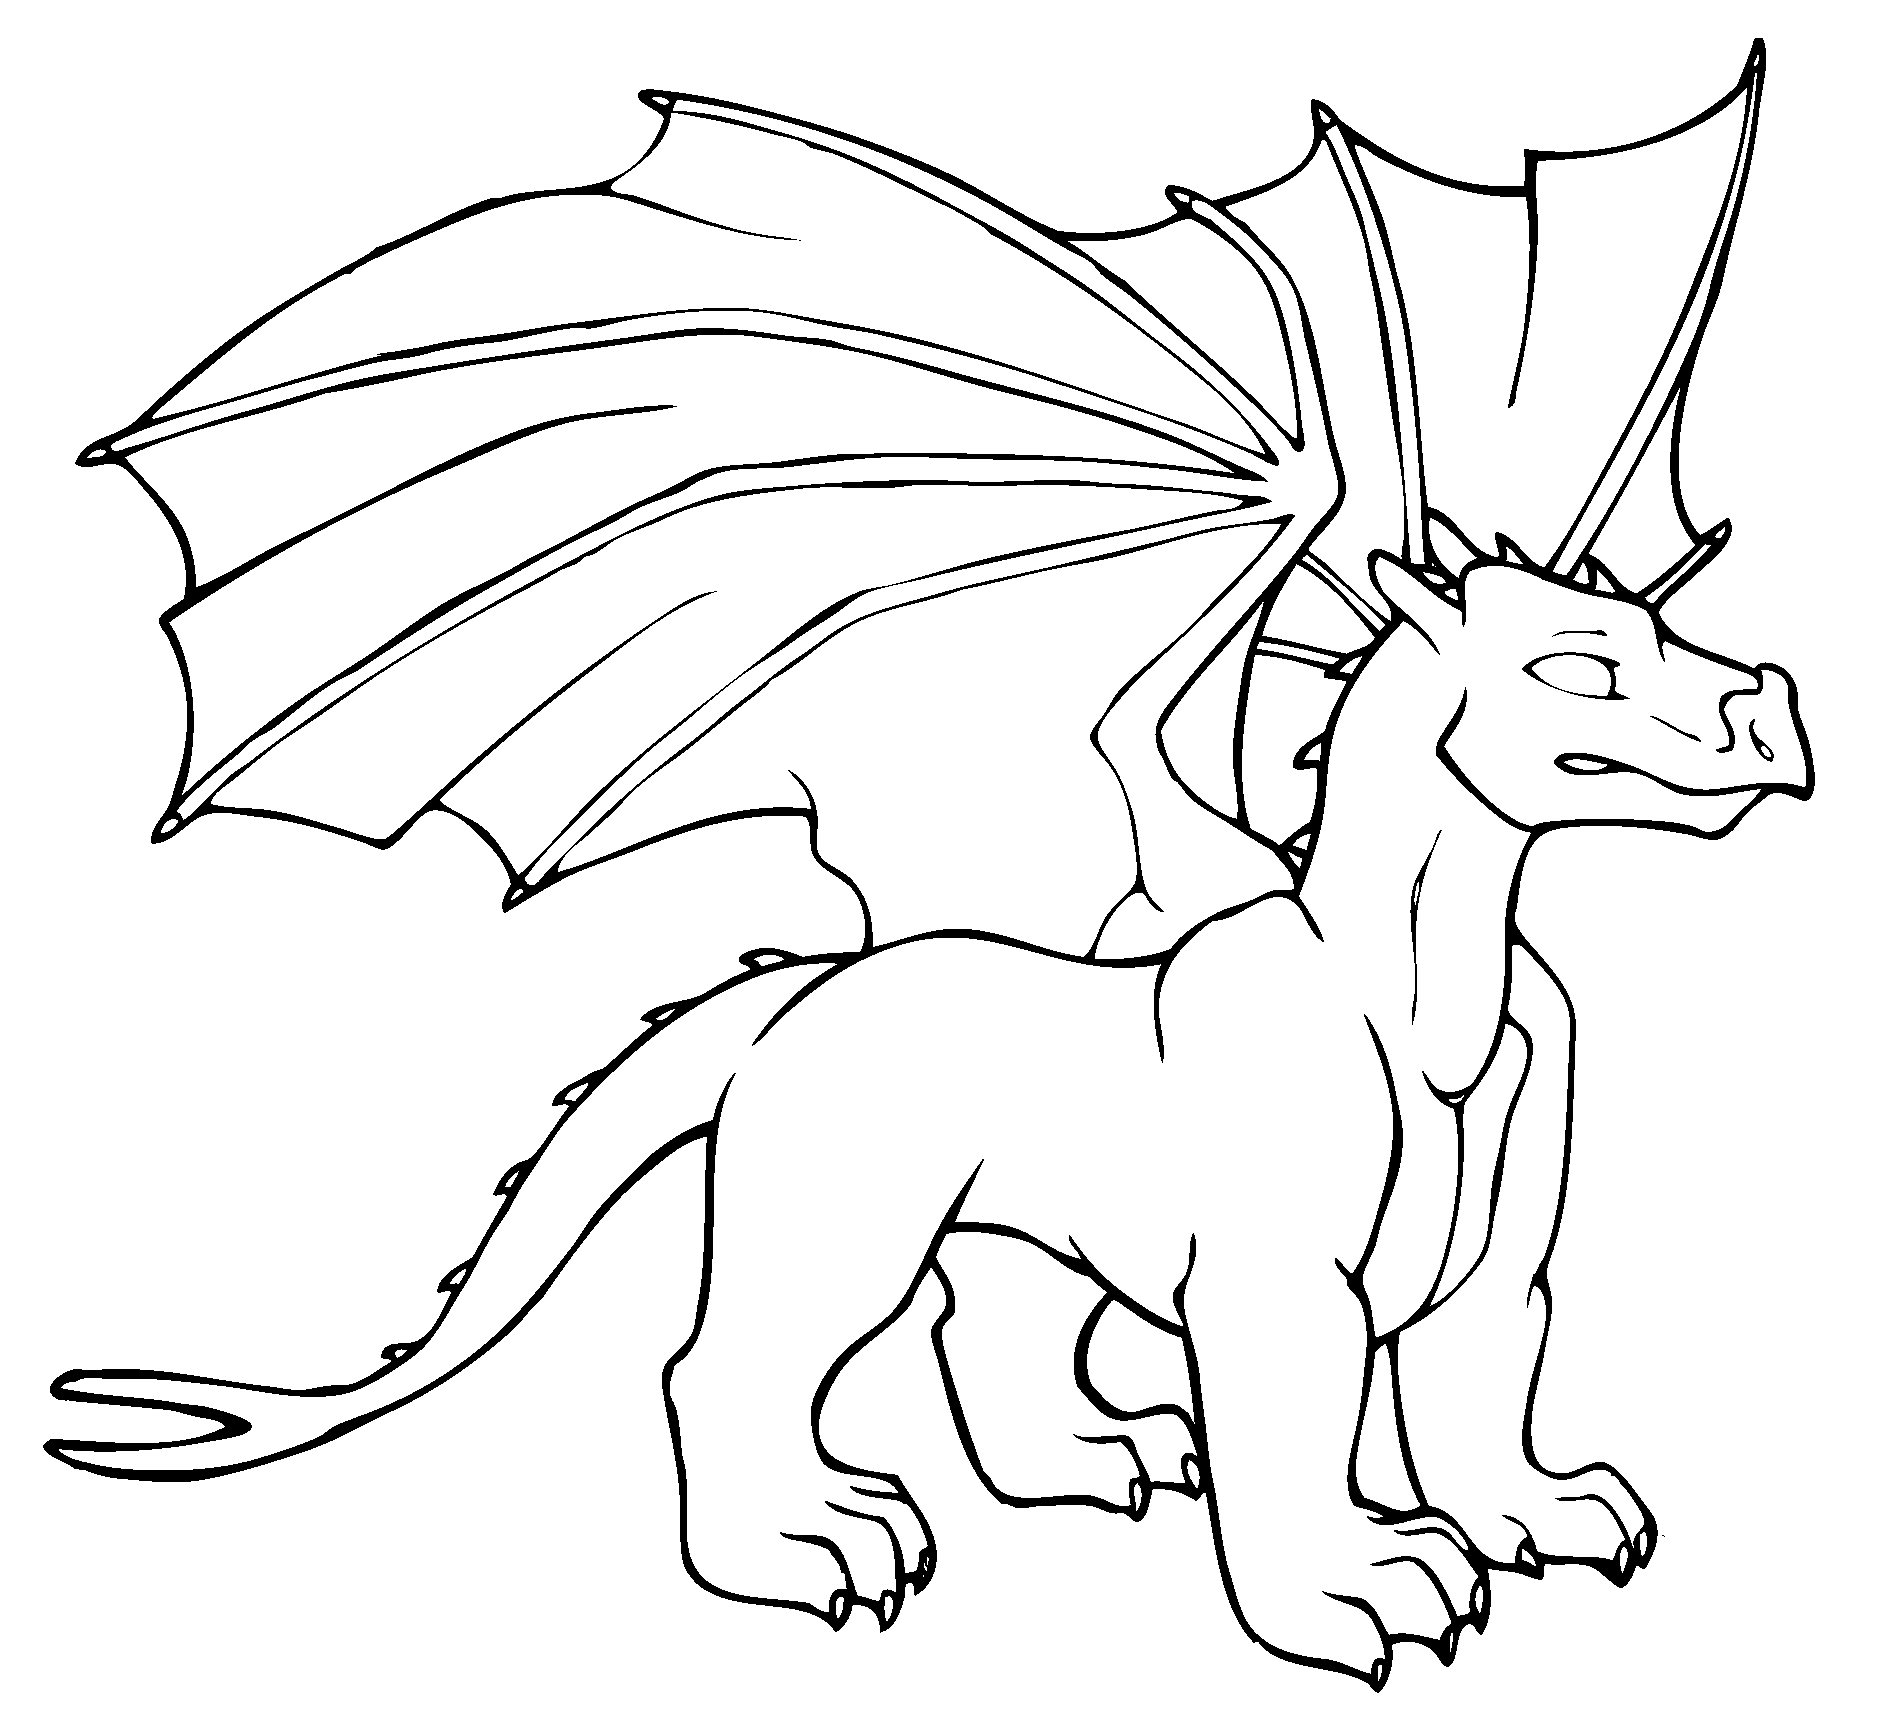 Dragon coloring, Download Dragon coloring for free 2019